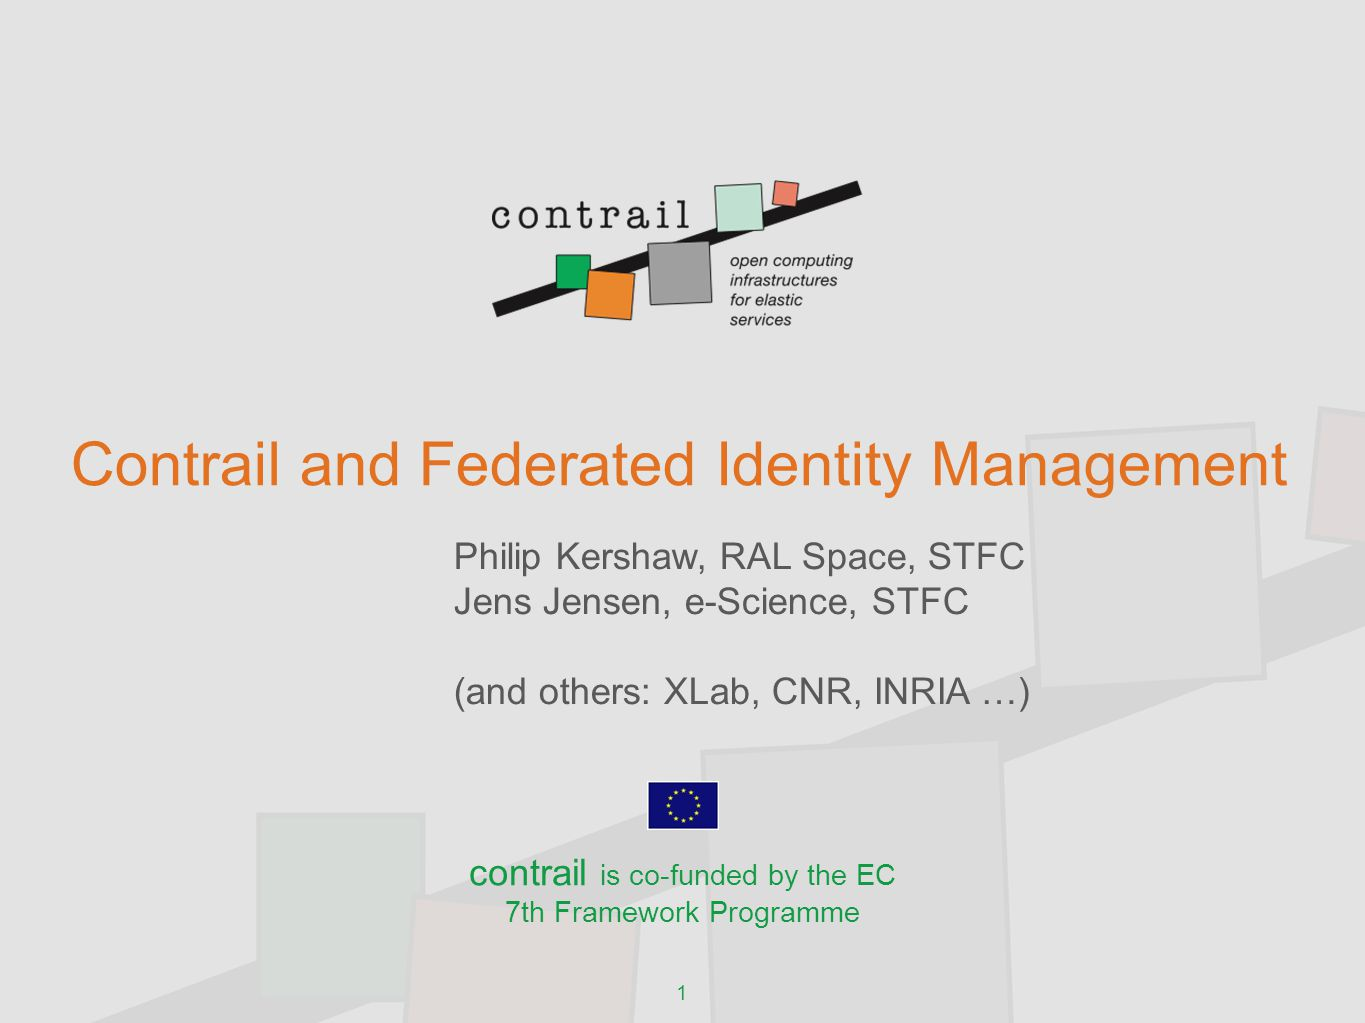 1 Contrail and Federated Identity Management Philip Kershaw, RAL Space, STFC Jens Jensen, e-Science, STFC (and others: XLab, CNR, INRIA …) contrail is